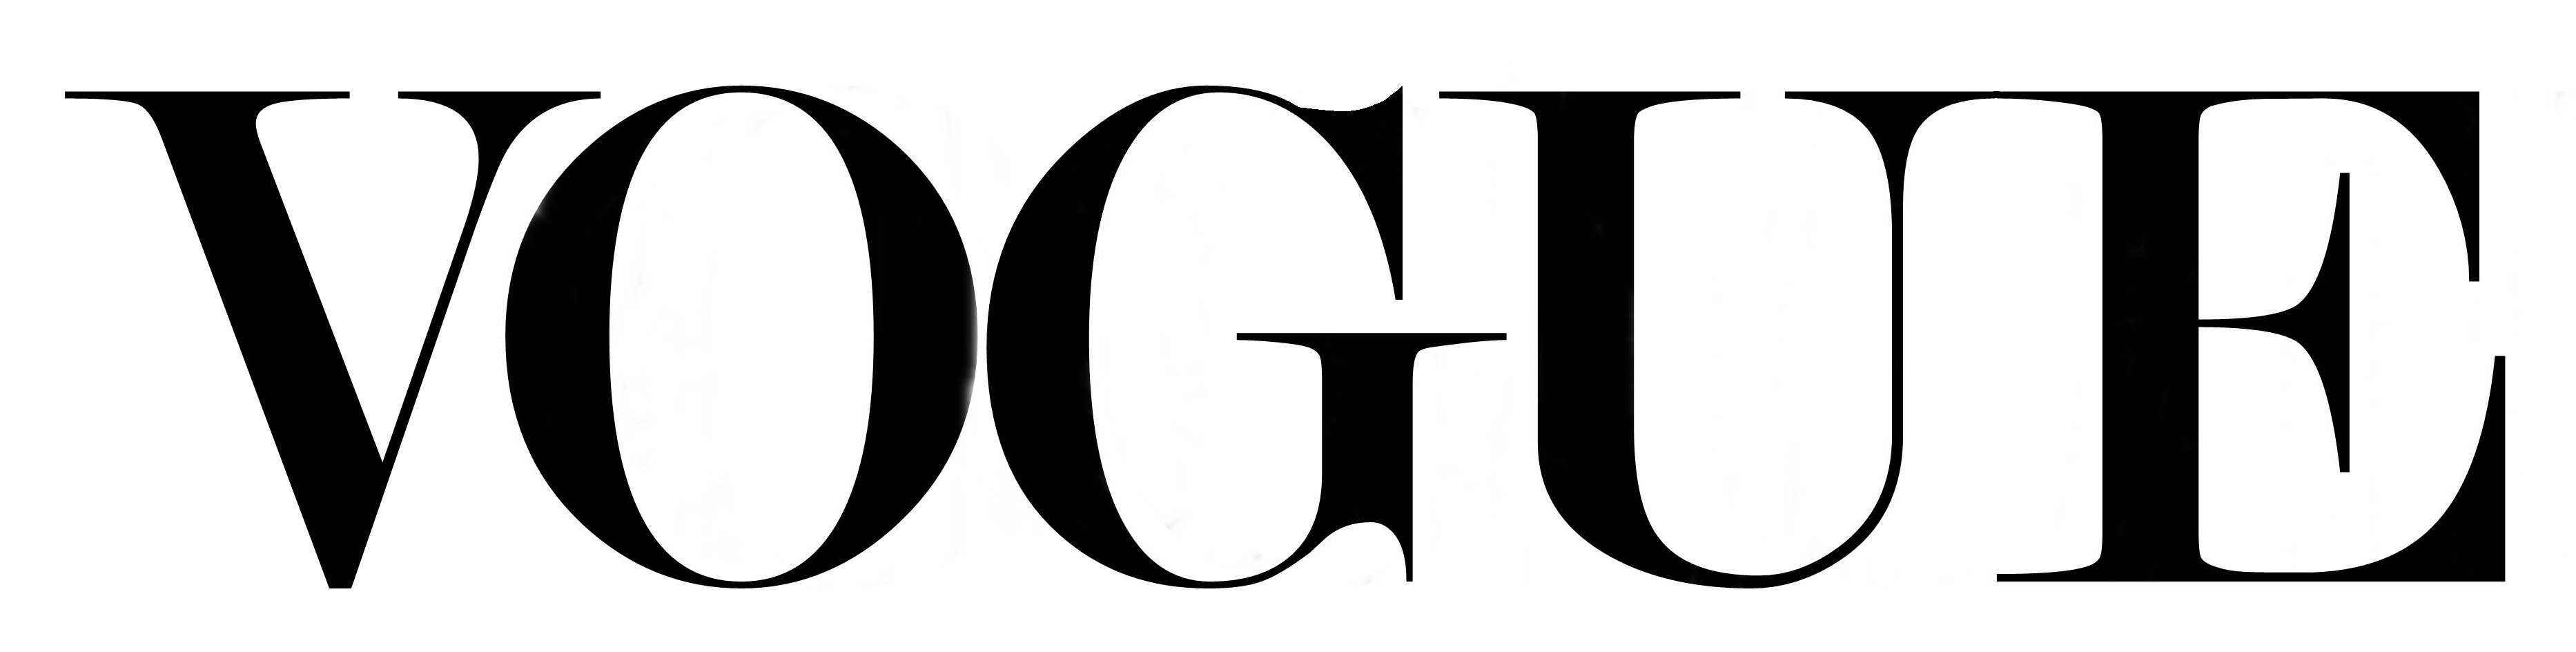 vogue-logo-wallpaper-1